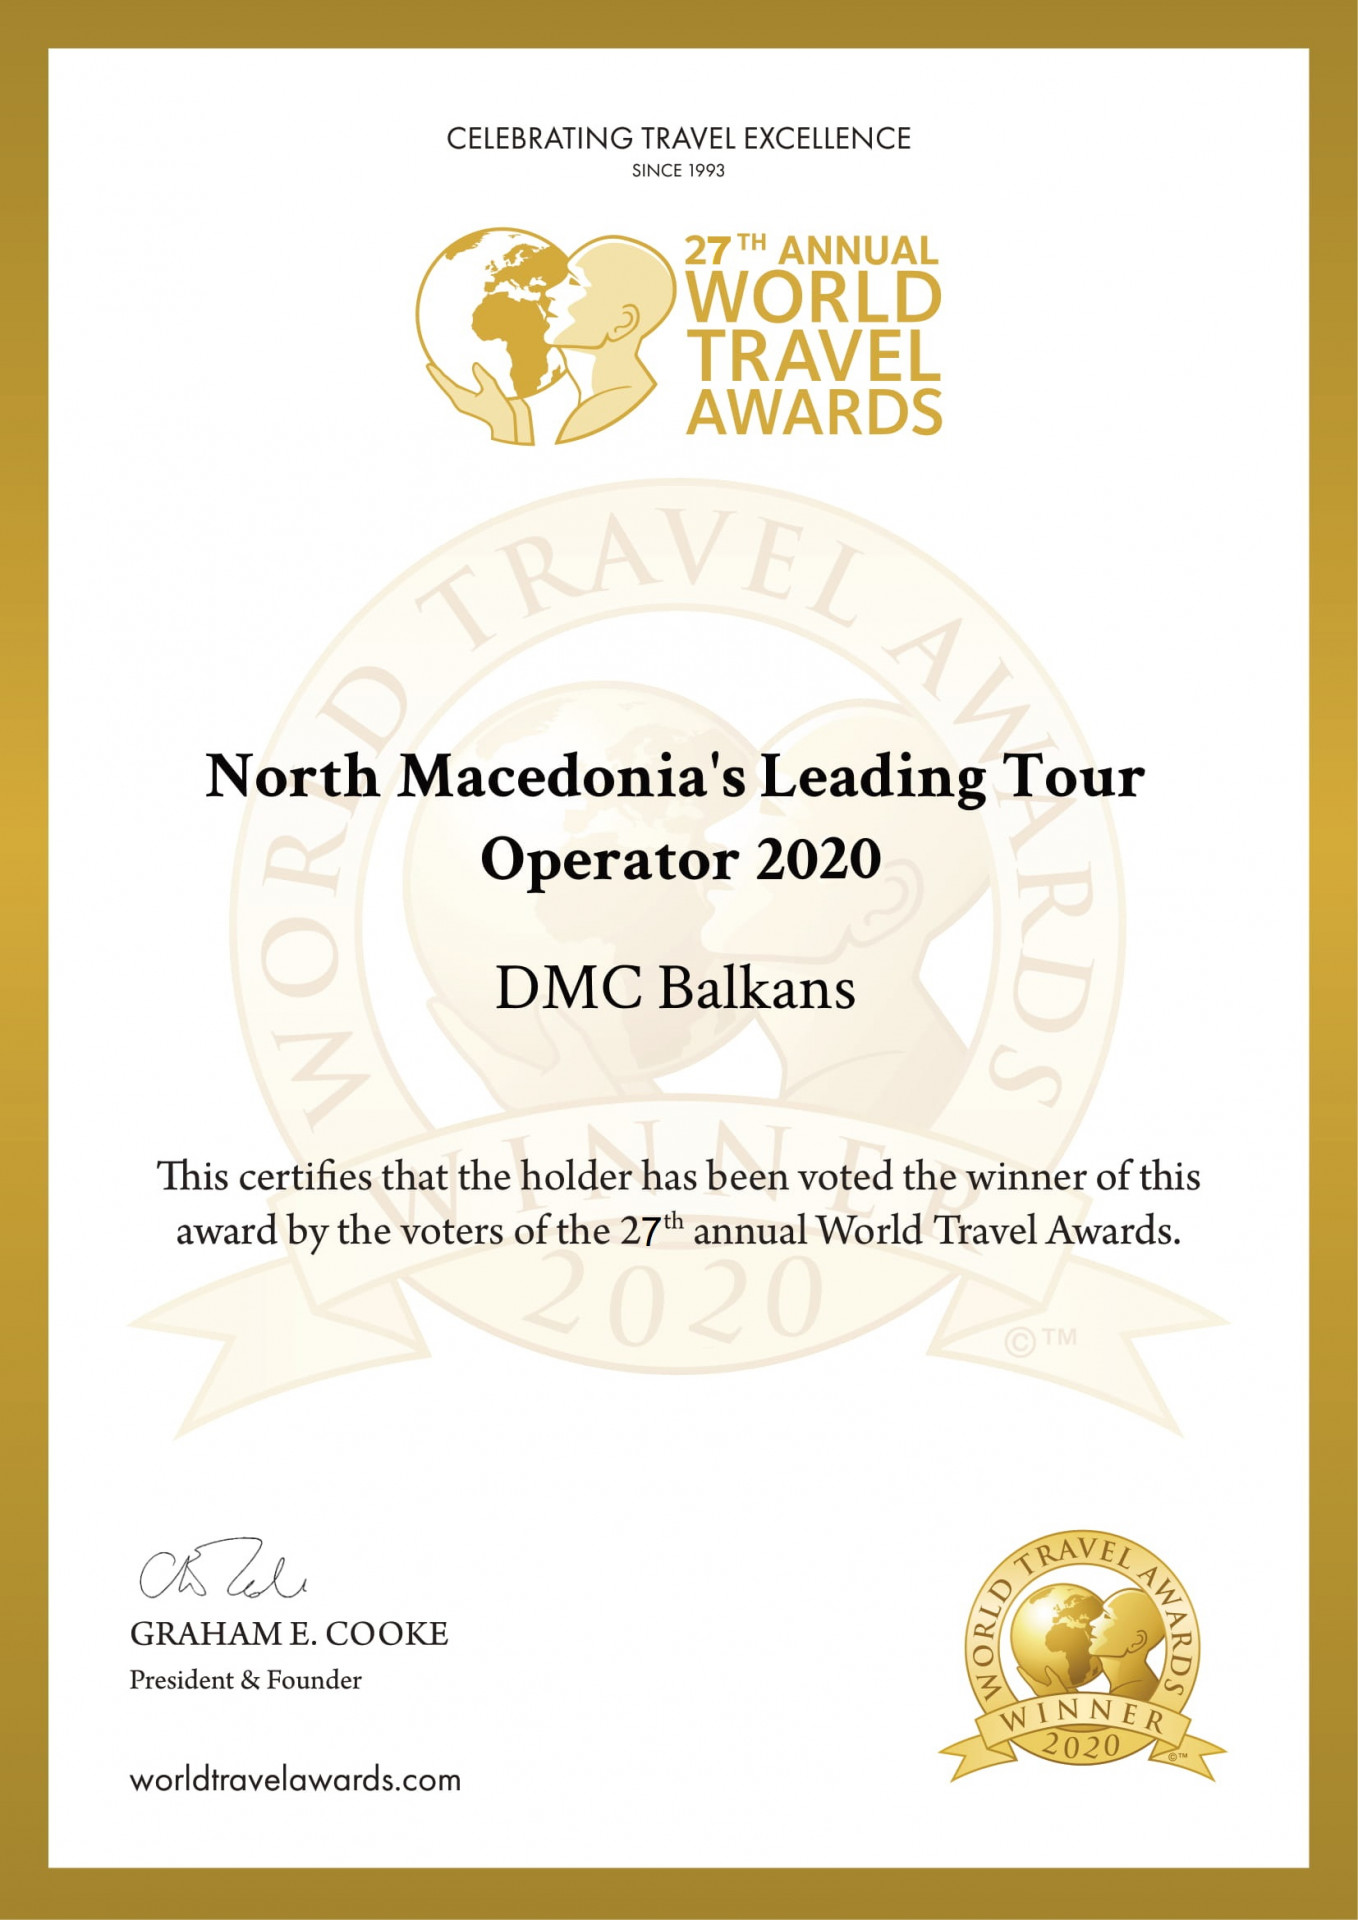 DMC Balkans Travel & Events -The best 2020 inbound tour operator for N.Macedonia and the Bal